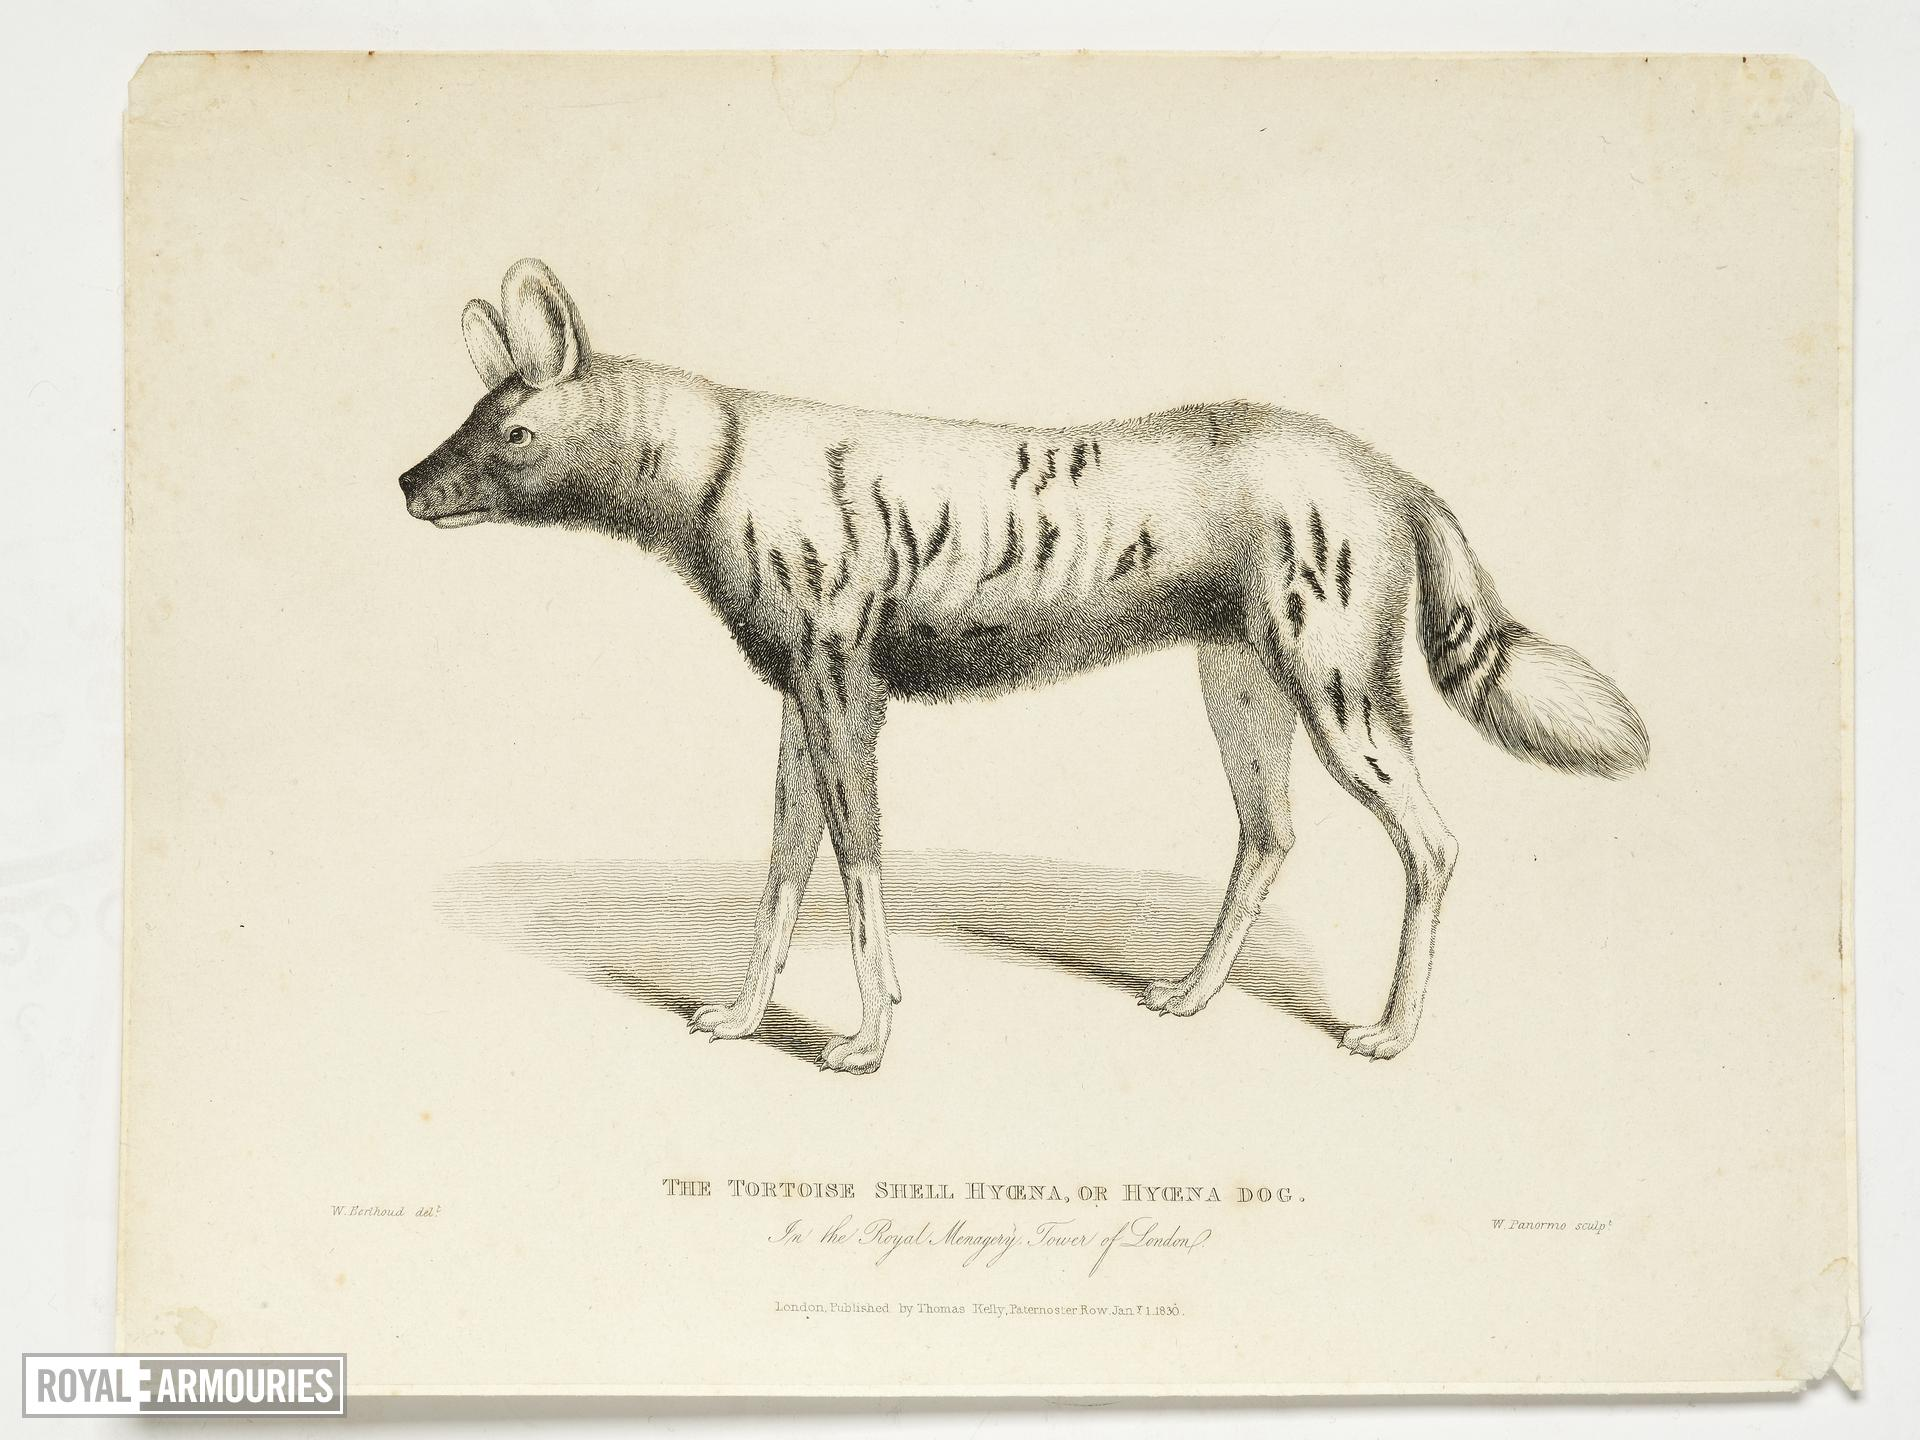 Print Entitled 'The Tortoiseshell Hyaena in the Royal Menagery, Tower of London', dated 1 January, 1830.